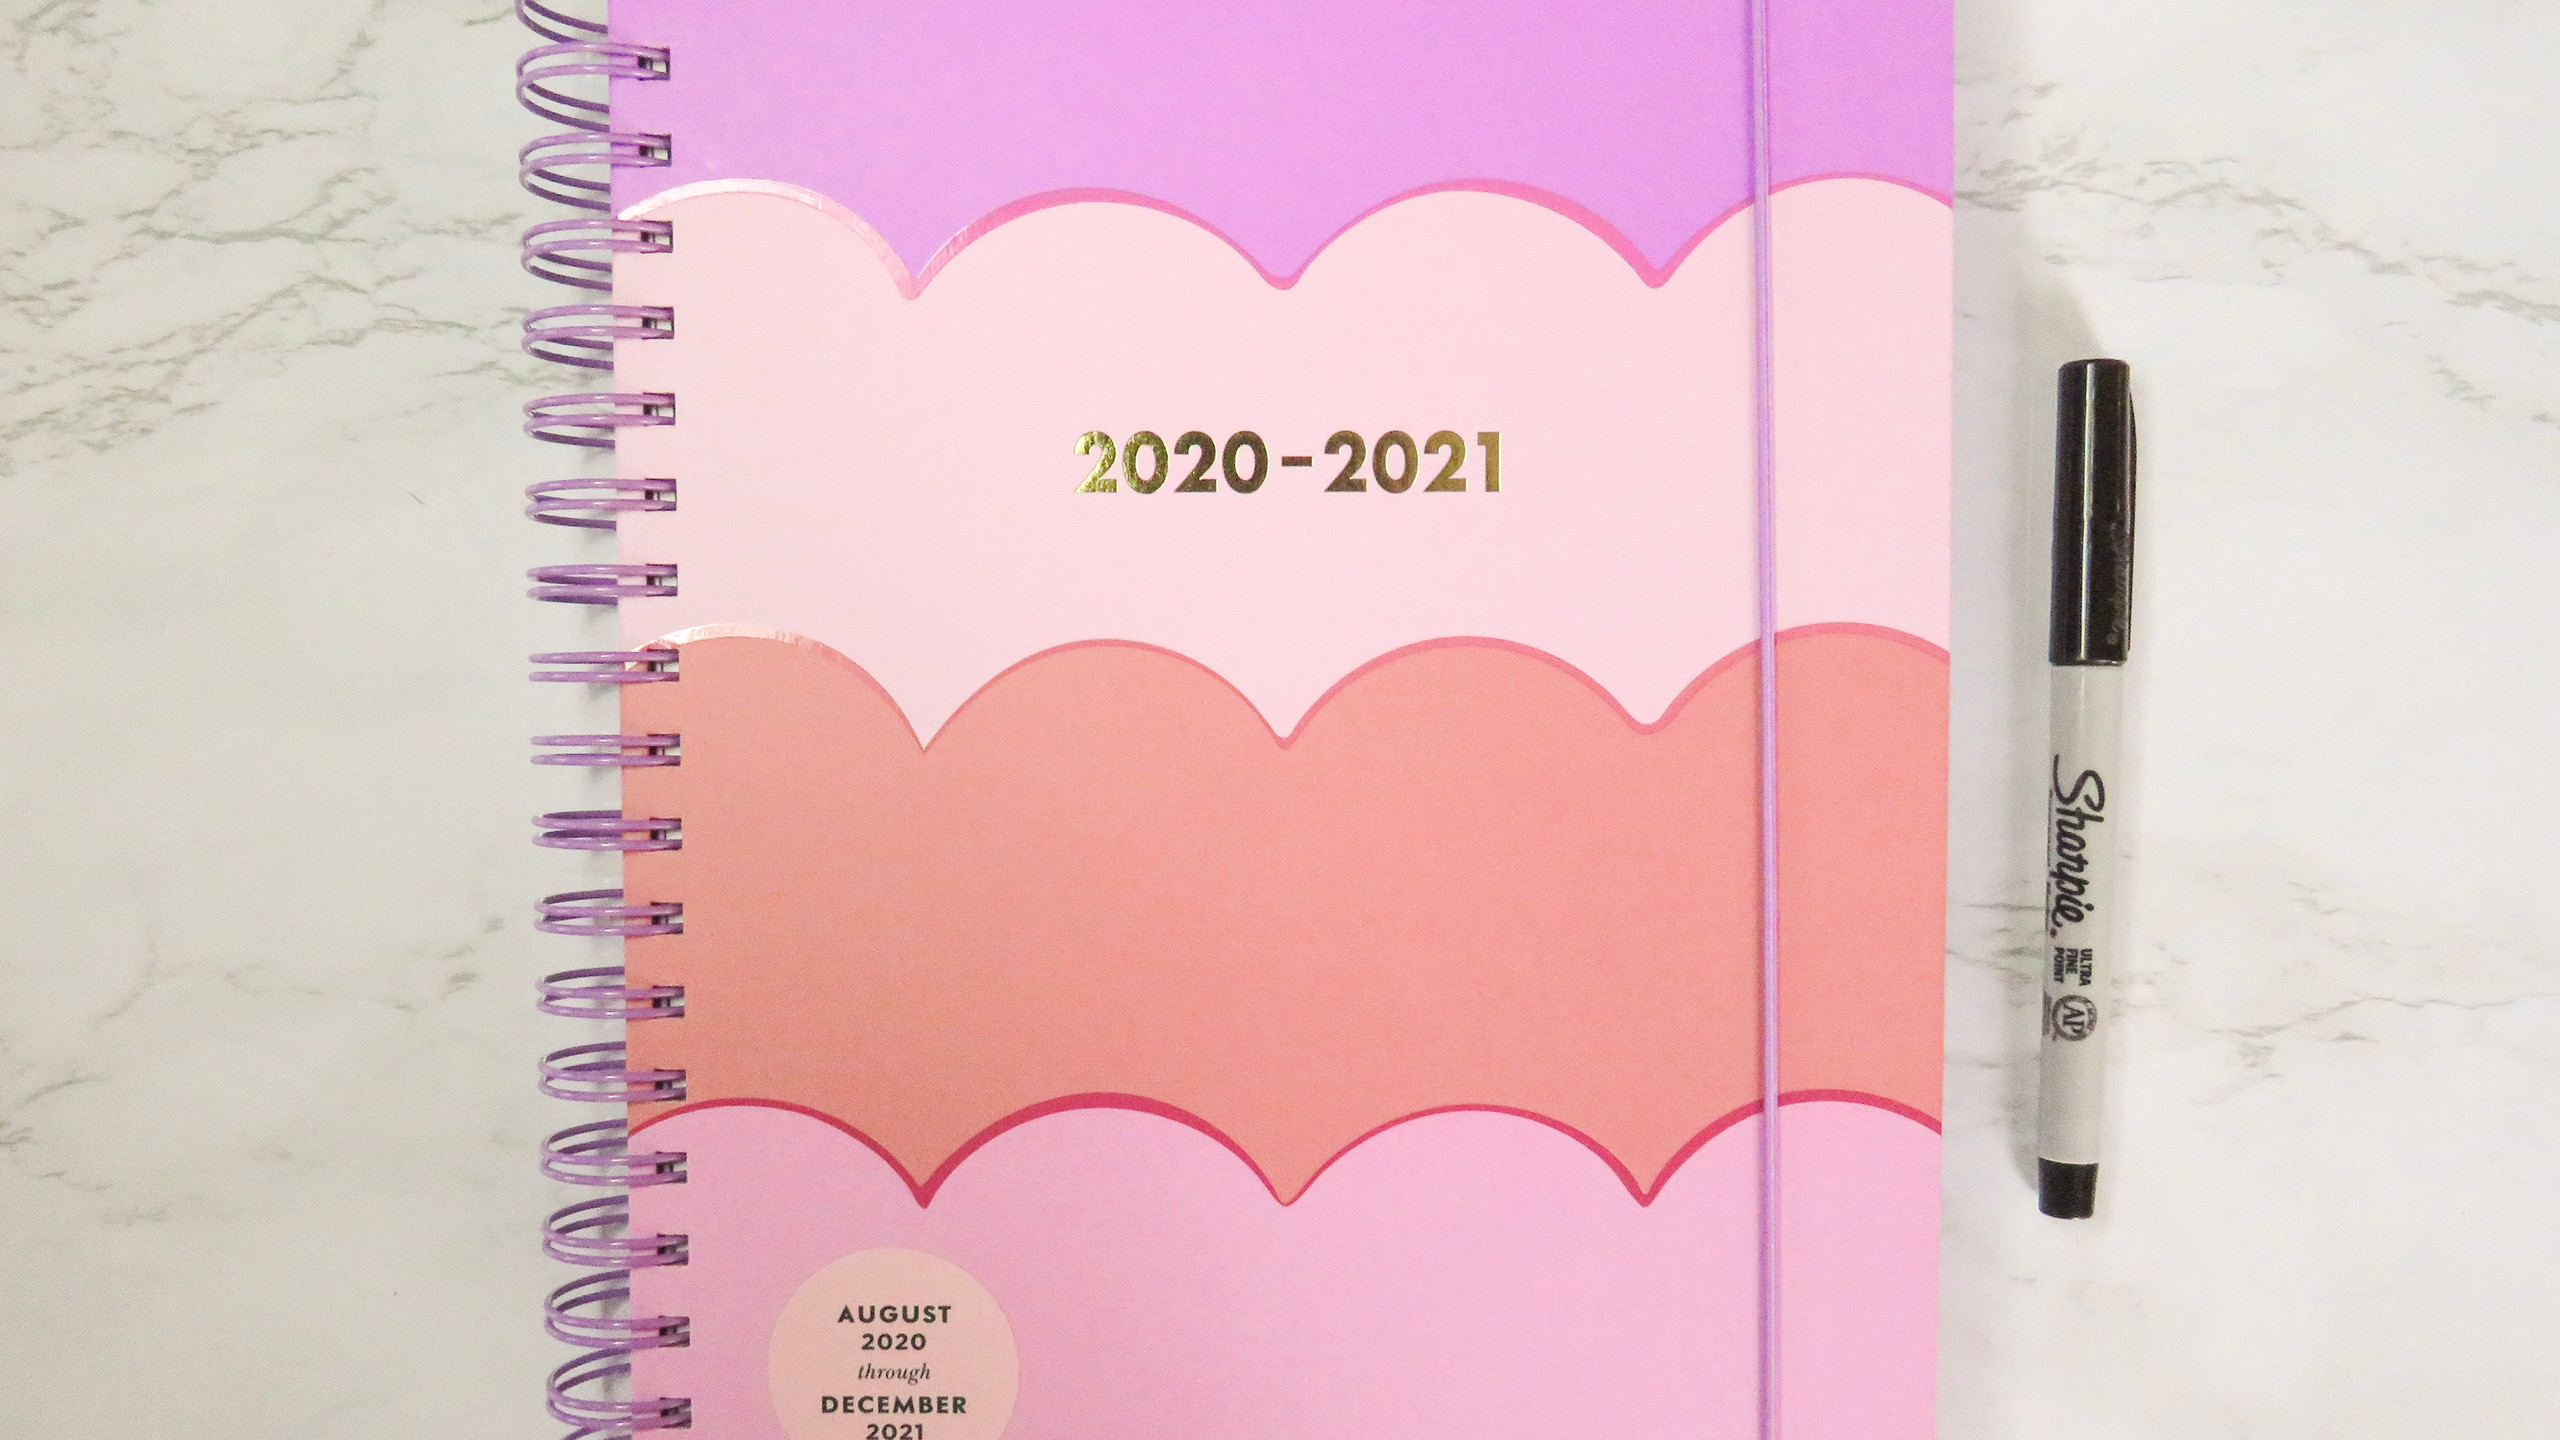 Kate Spade New York Mega 2020-2021 Planner in Pink & Purple Scallop